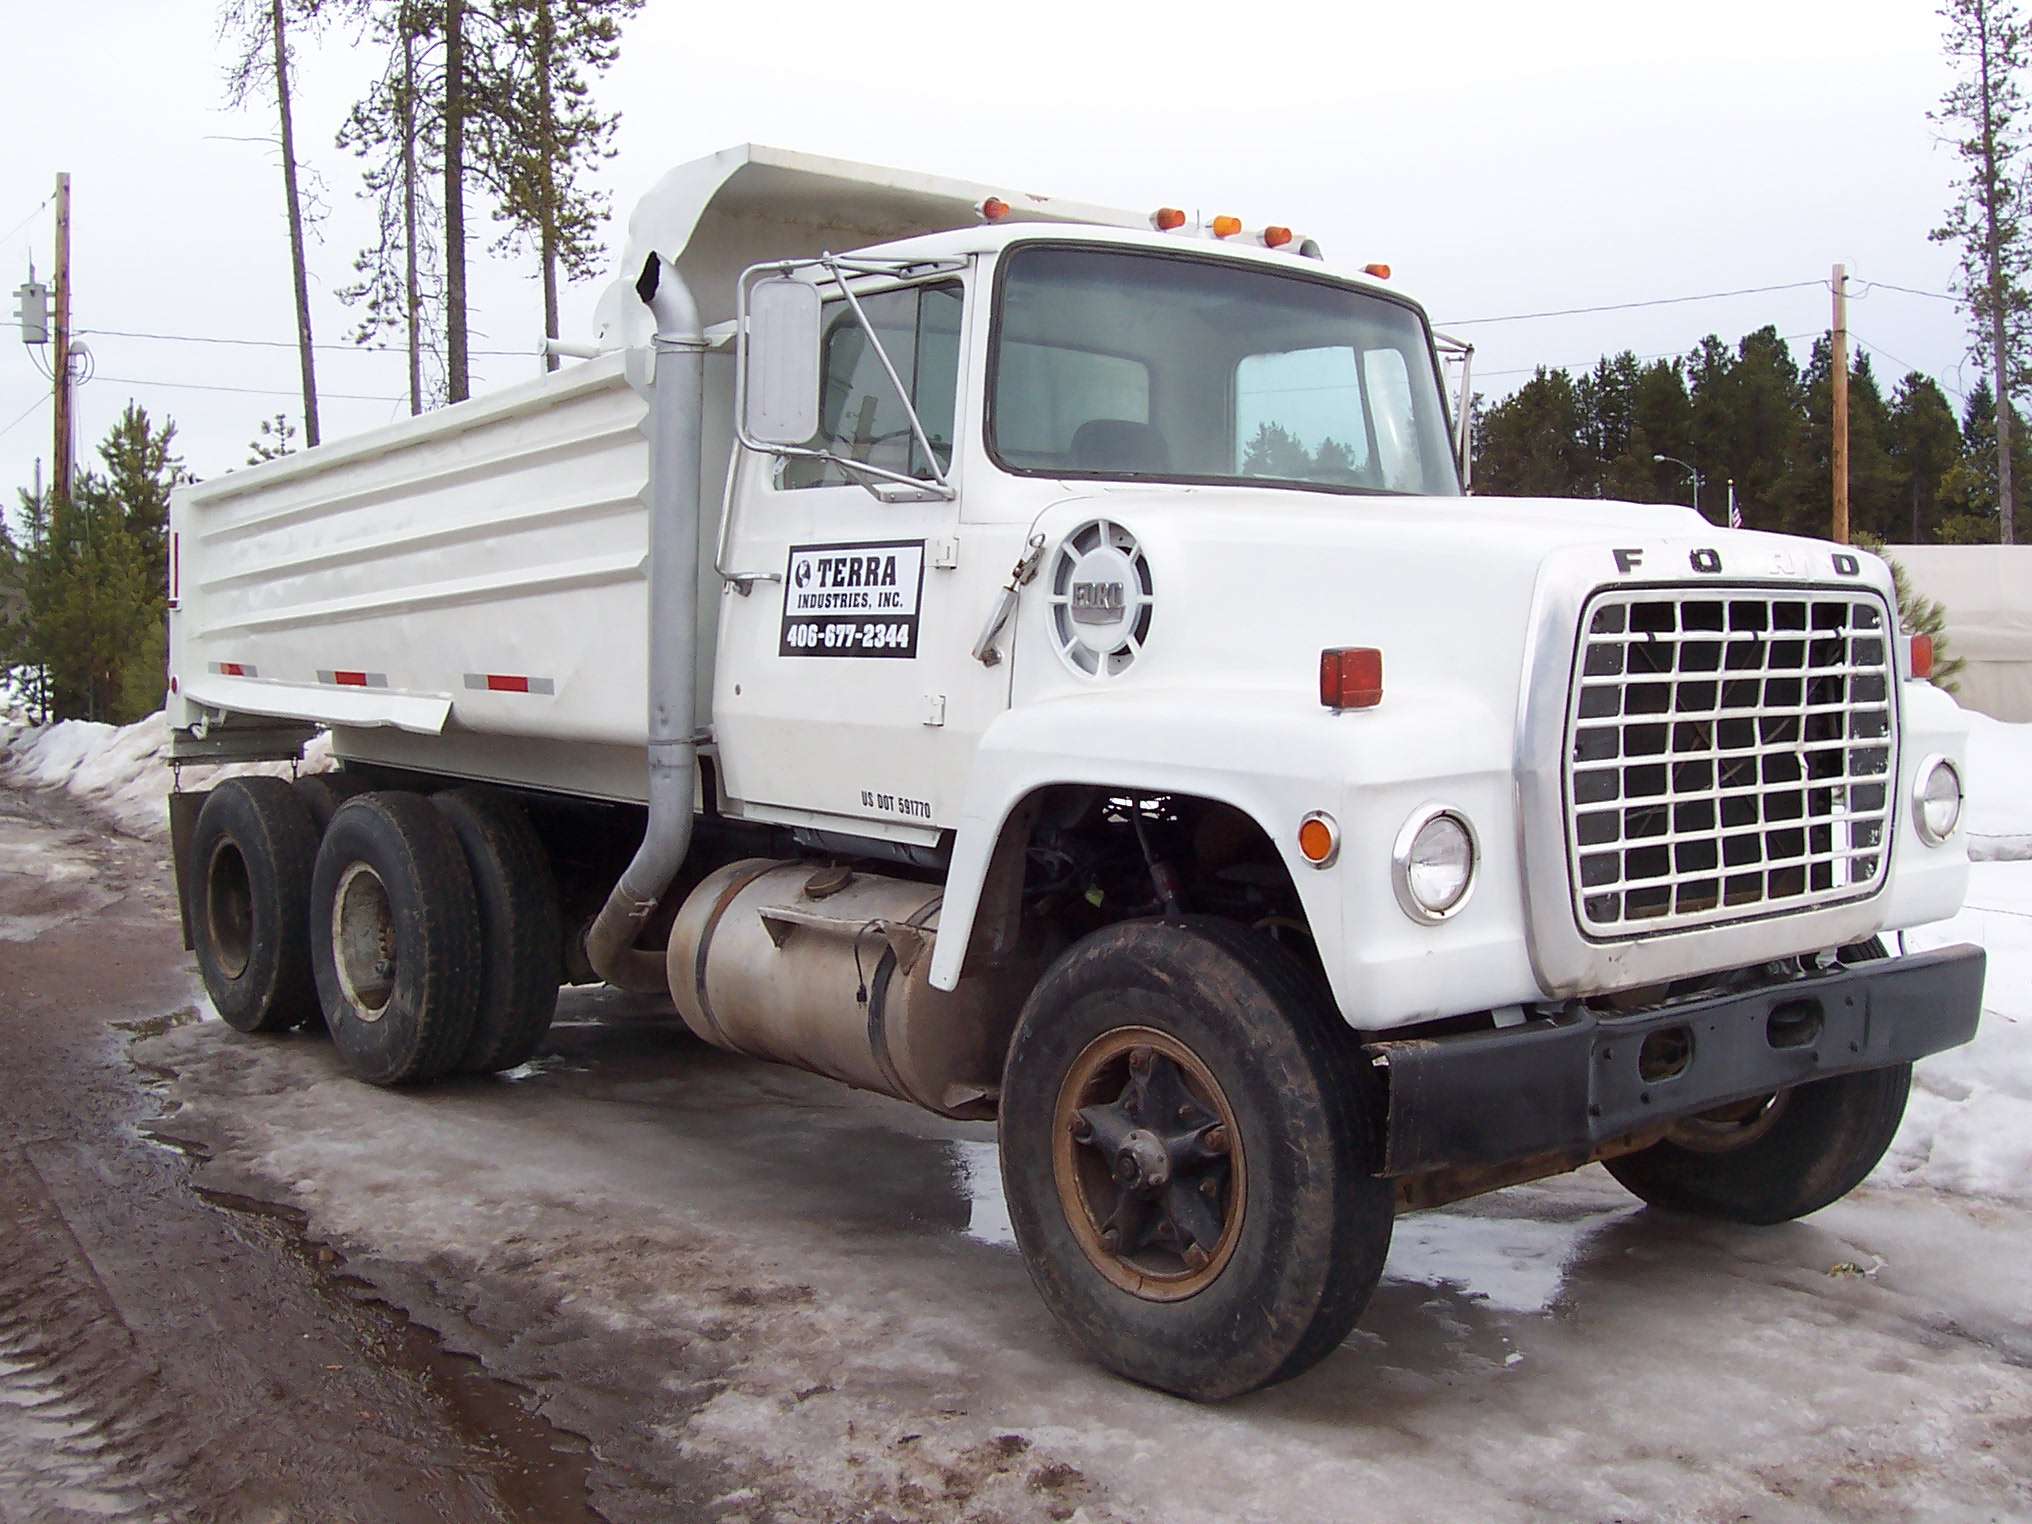 1979 Ford Lt9000 Dump Truck For Sale Seely Lake Mt 236784